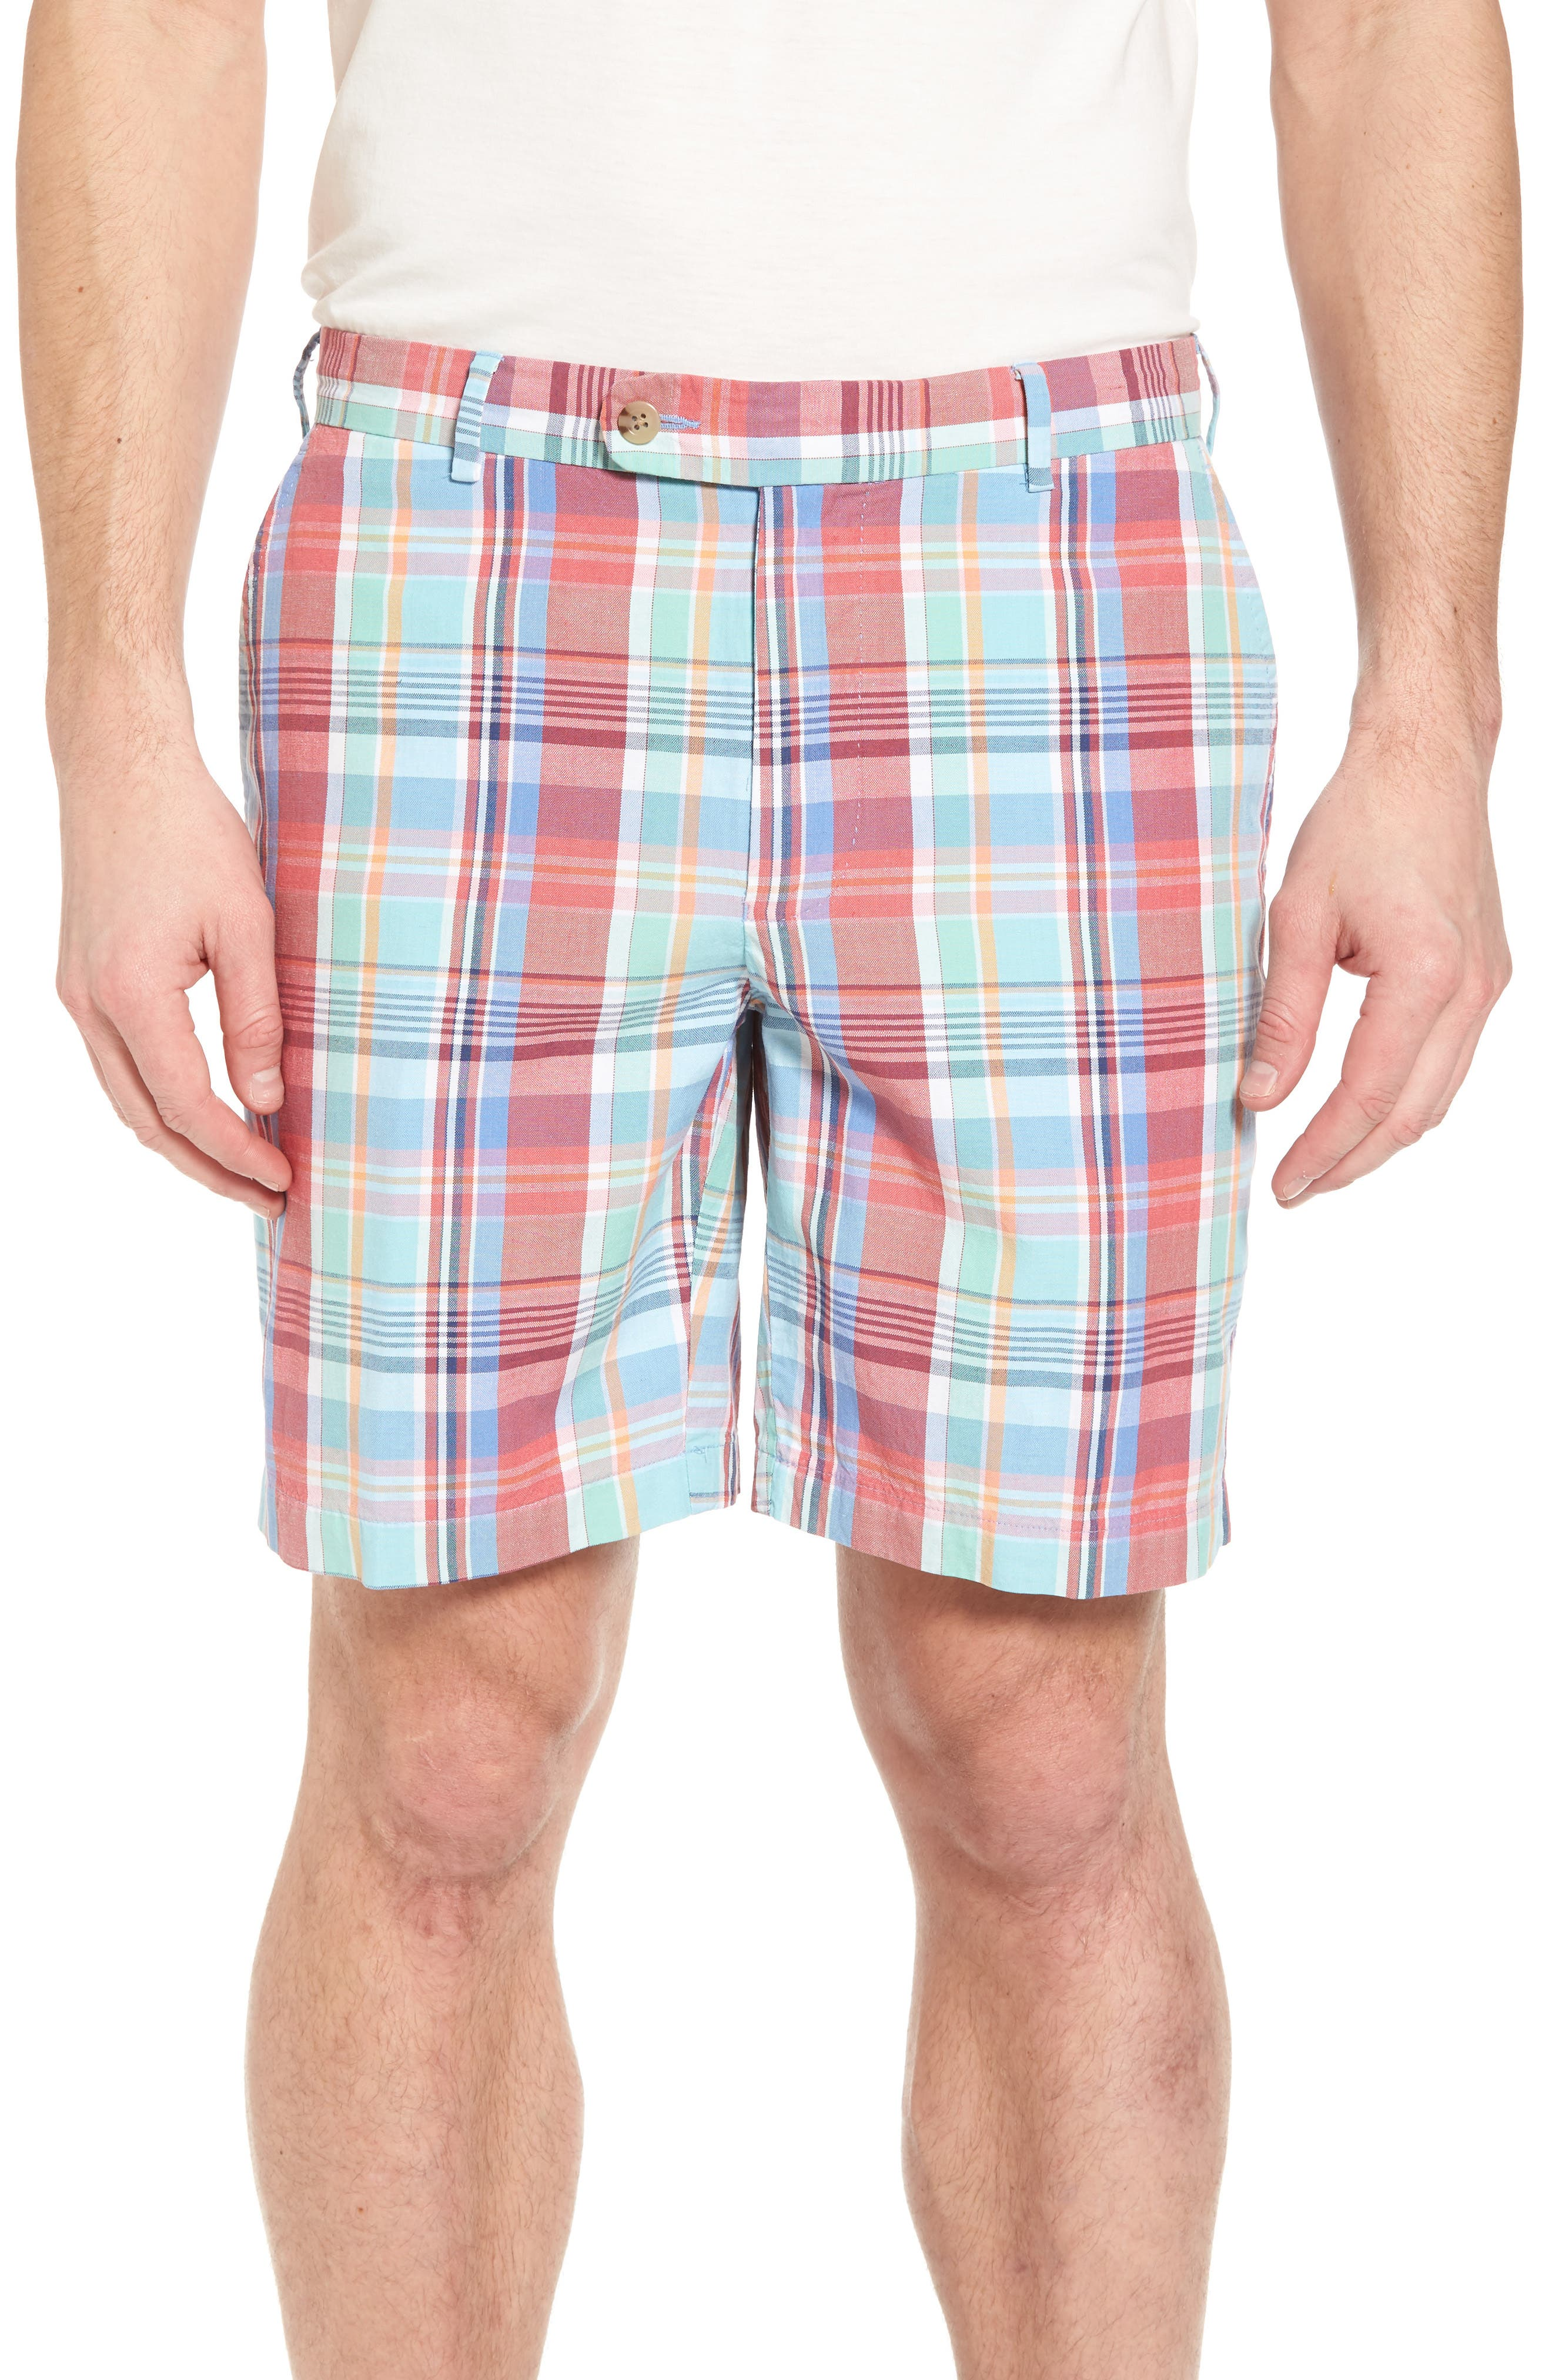 Seaside Madras Plaid Shorts,                         Main,                         color, Cape Red